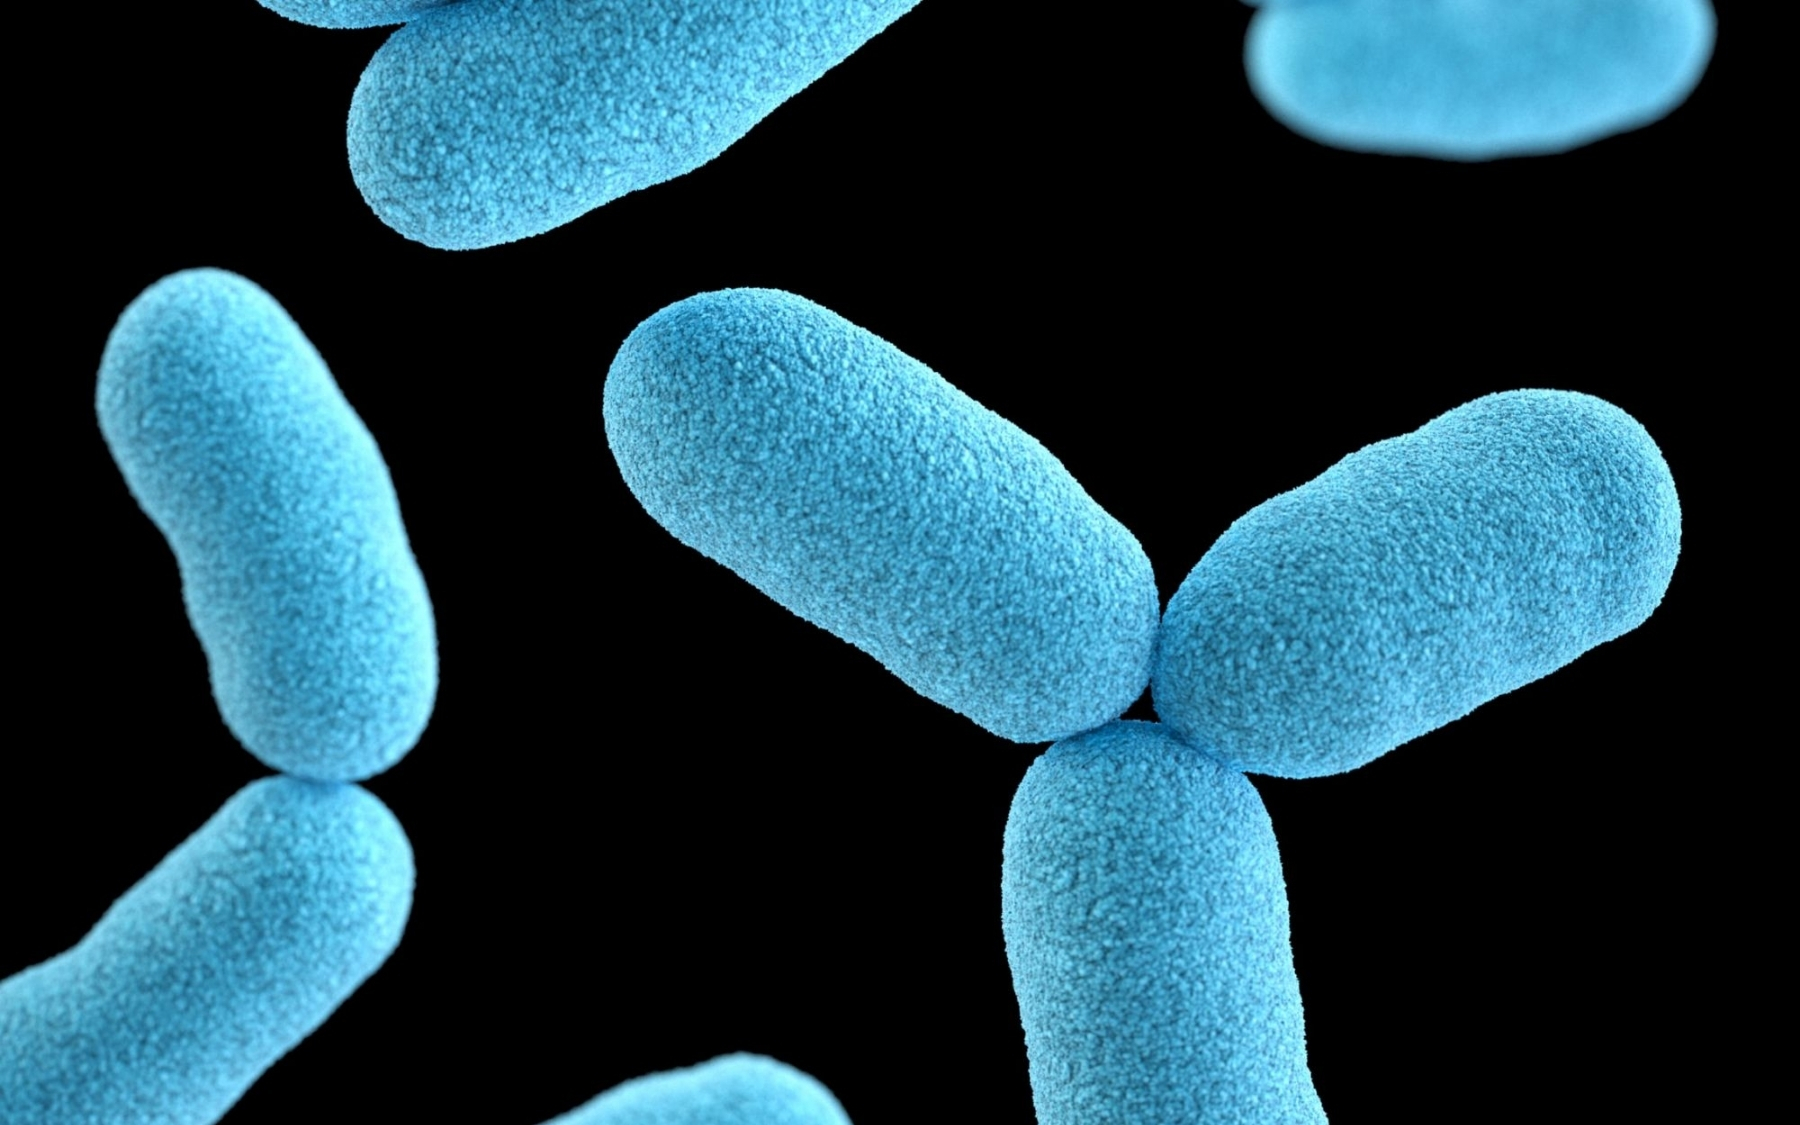 The microbiome in the semen - does it matter?